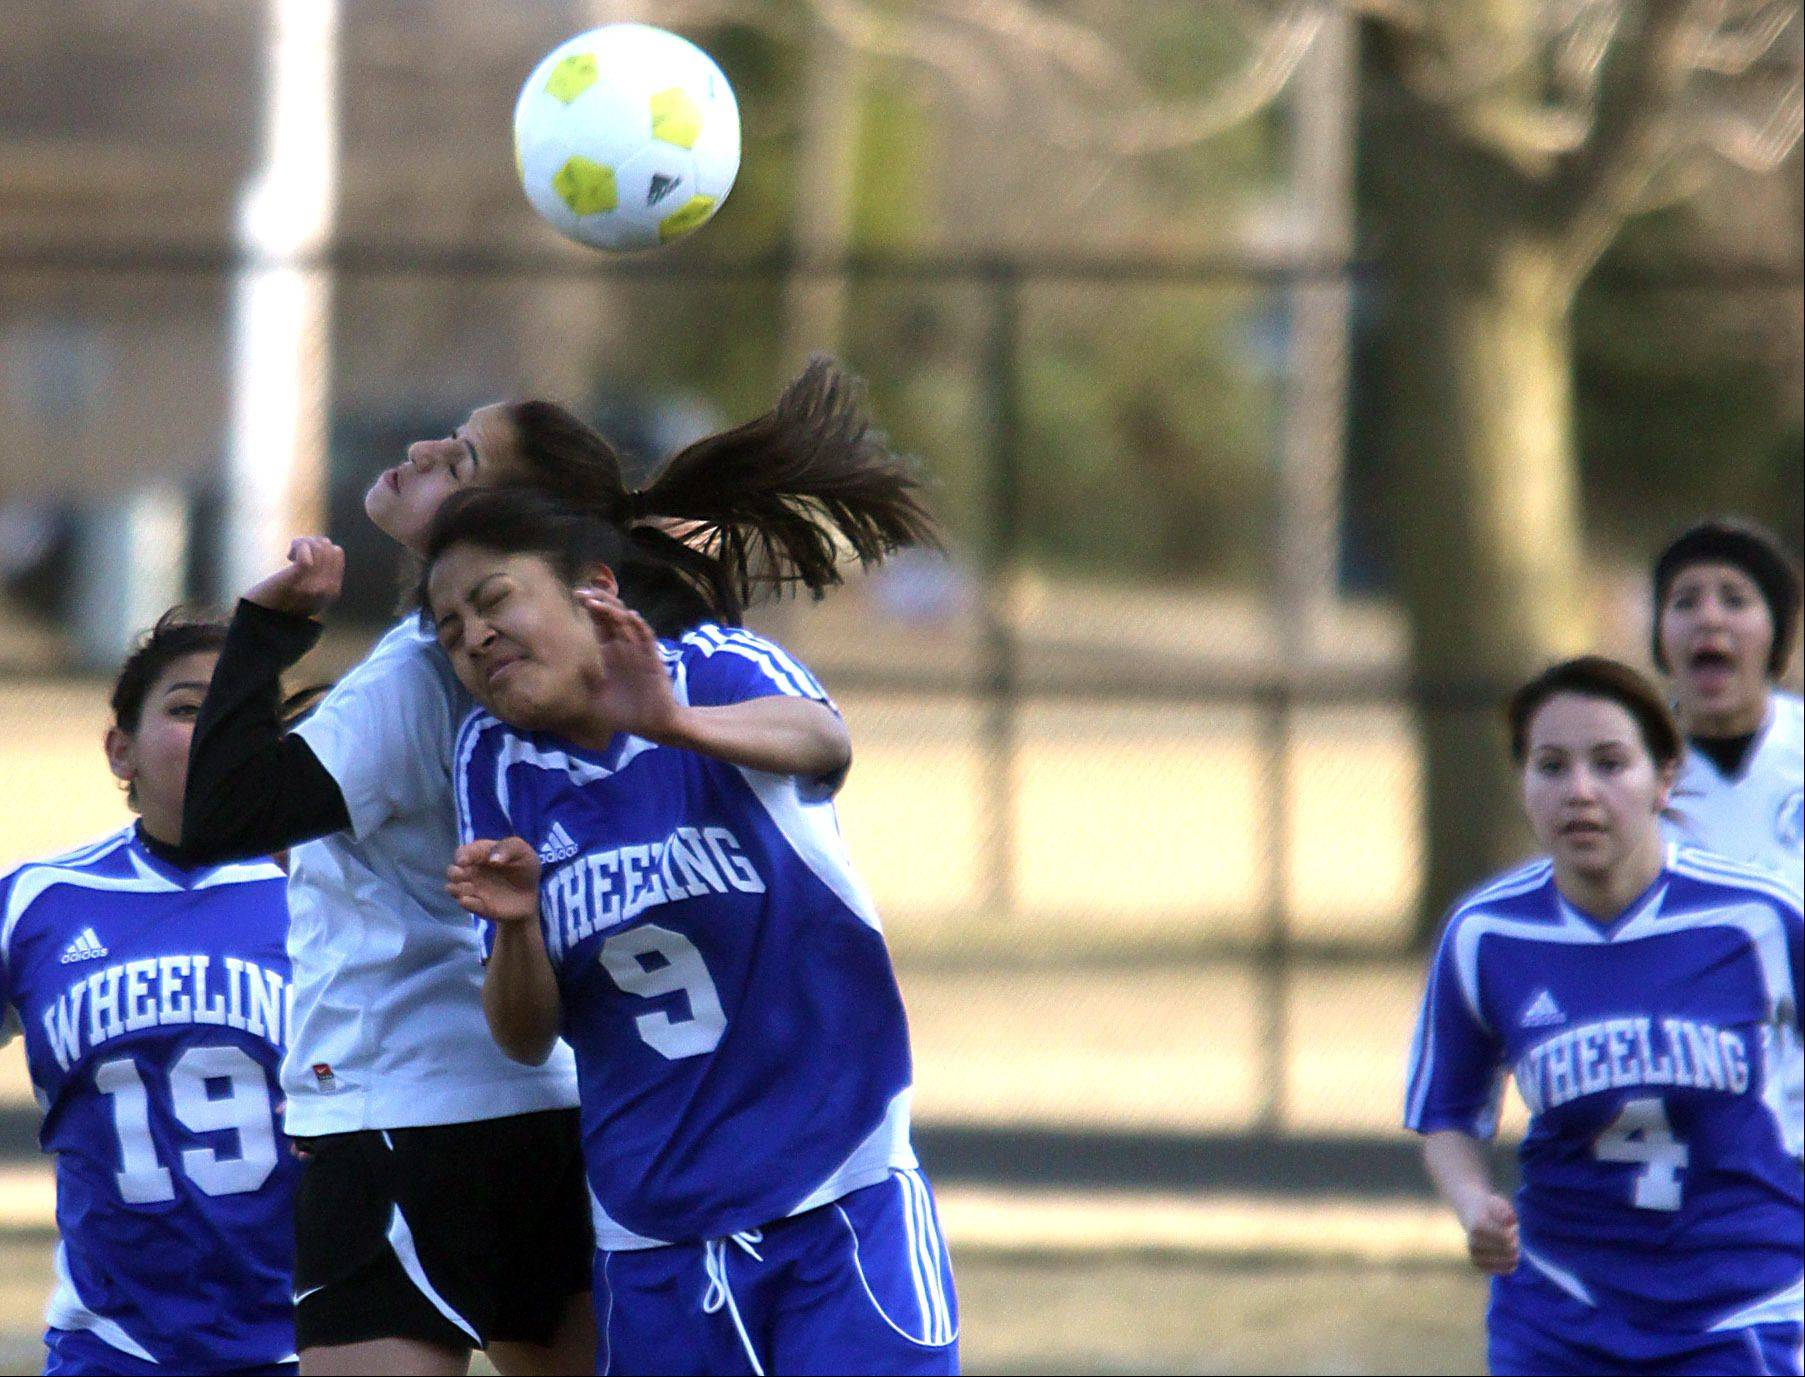 Wheeling's Cindy Castillo, front, battles Maine West's Joanne Stanfa for a header during action at Maine West on Monday.